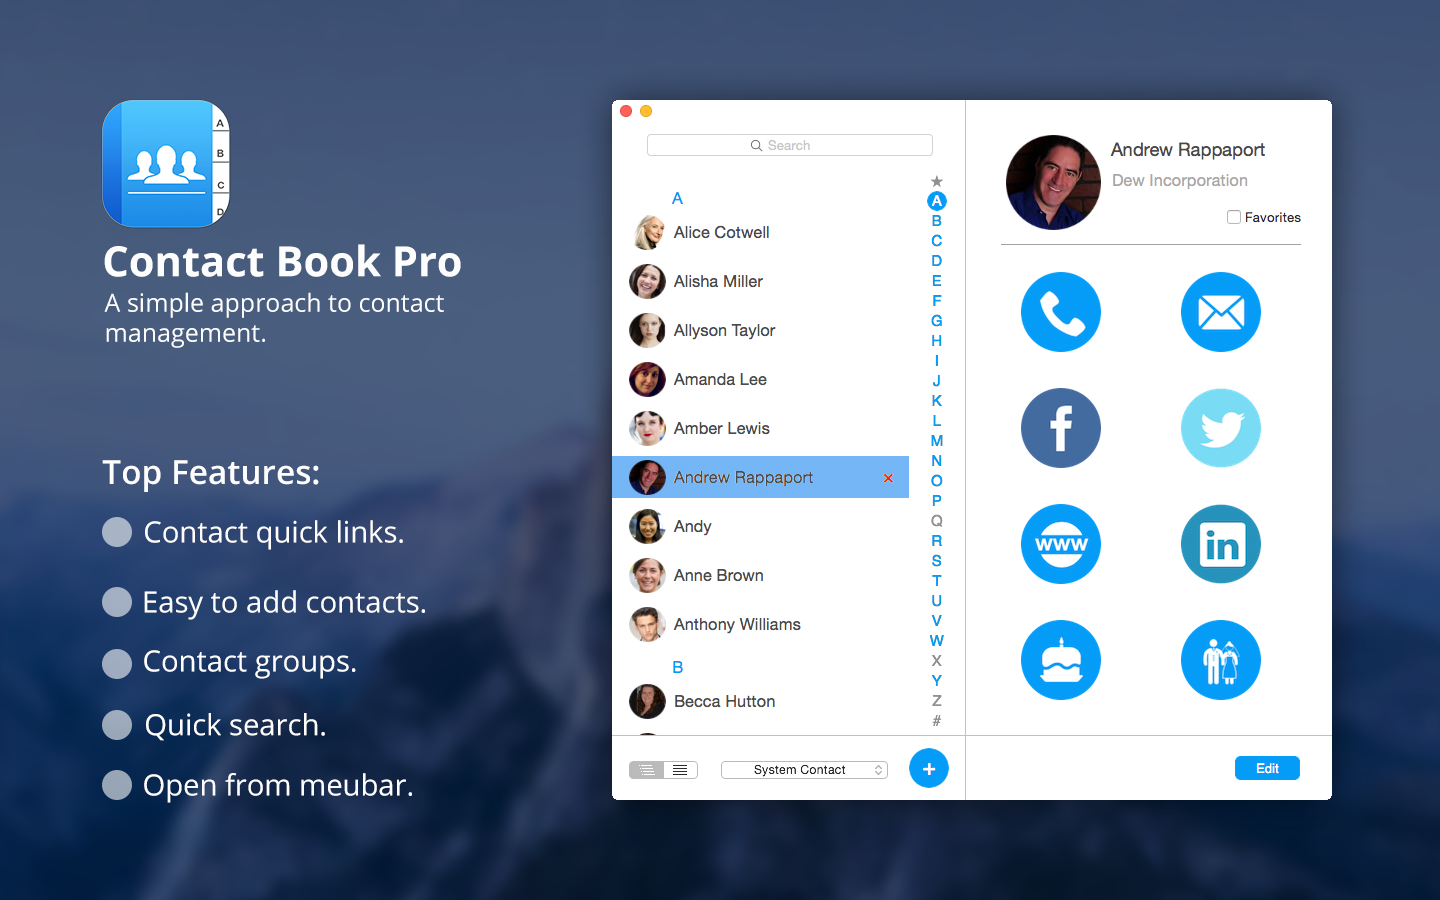 Contact Book Pro